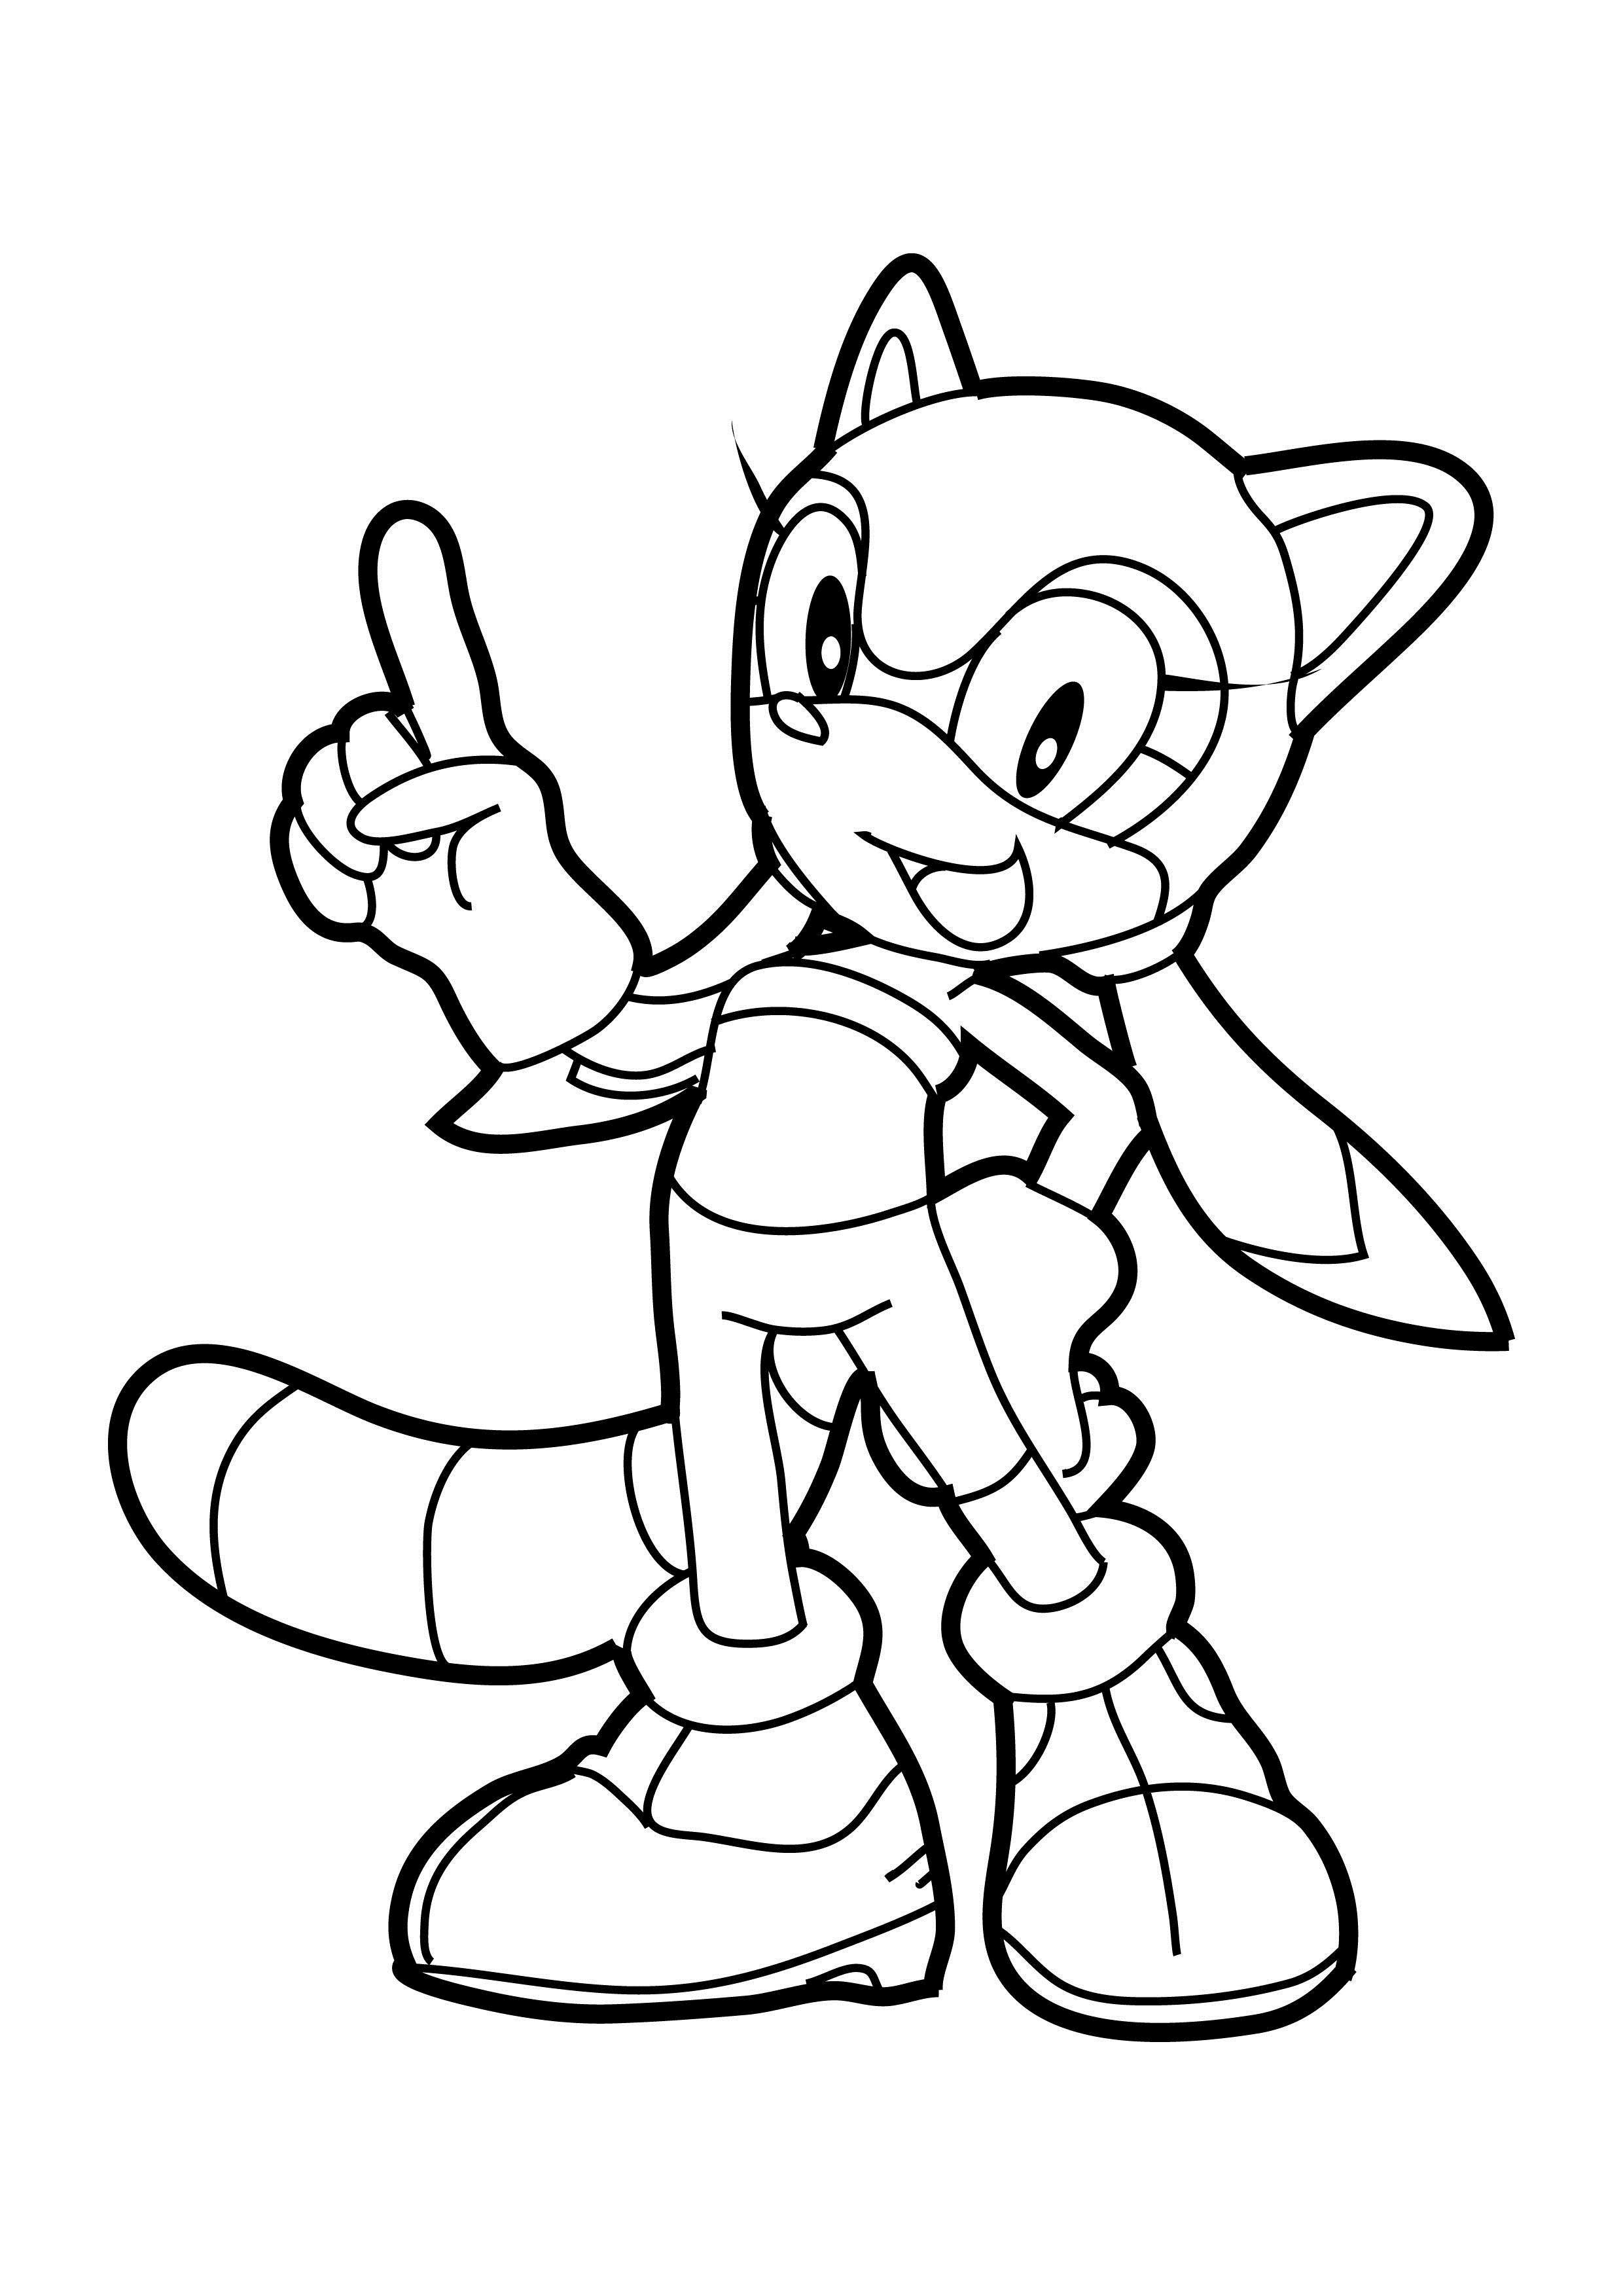 sonic coloring page sonic boom channel 3939sonic3939 coloring pages by celina8 on coloring sonic page